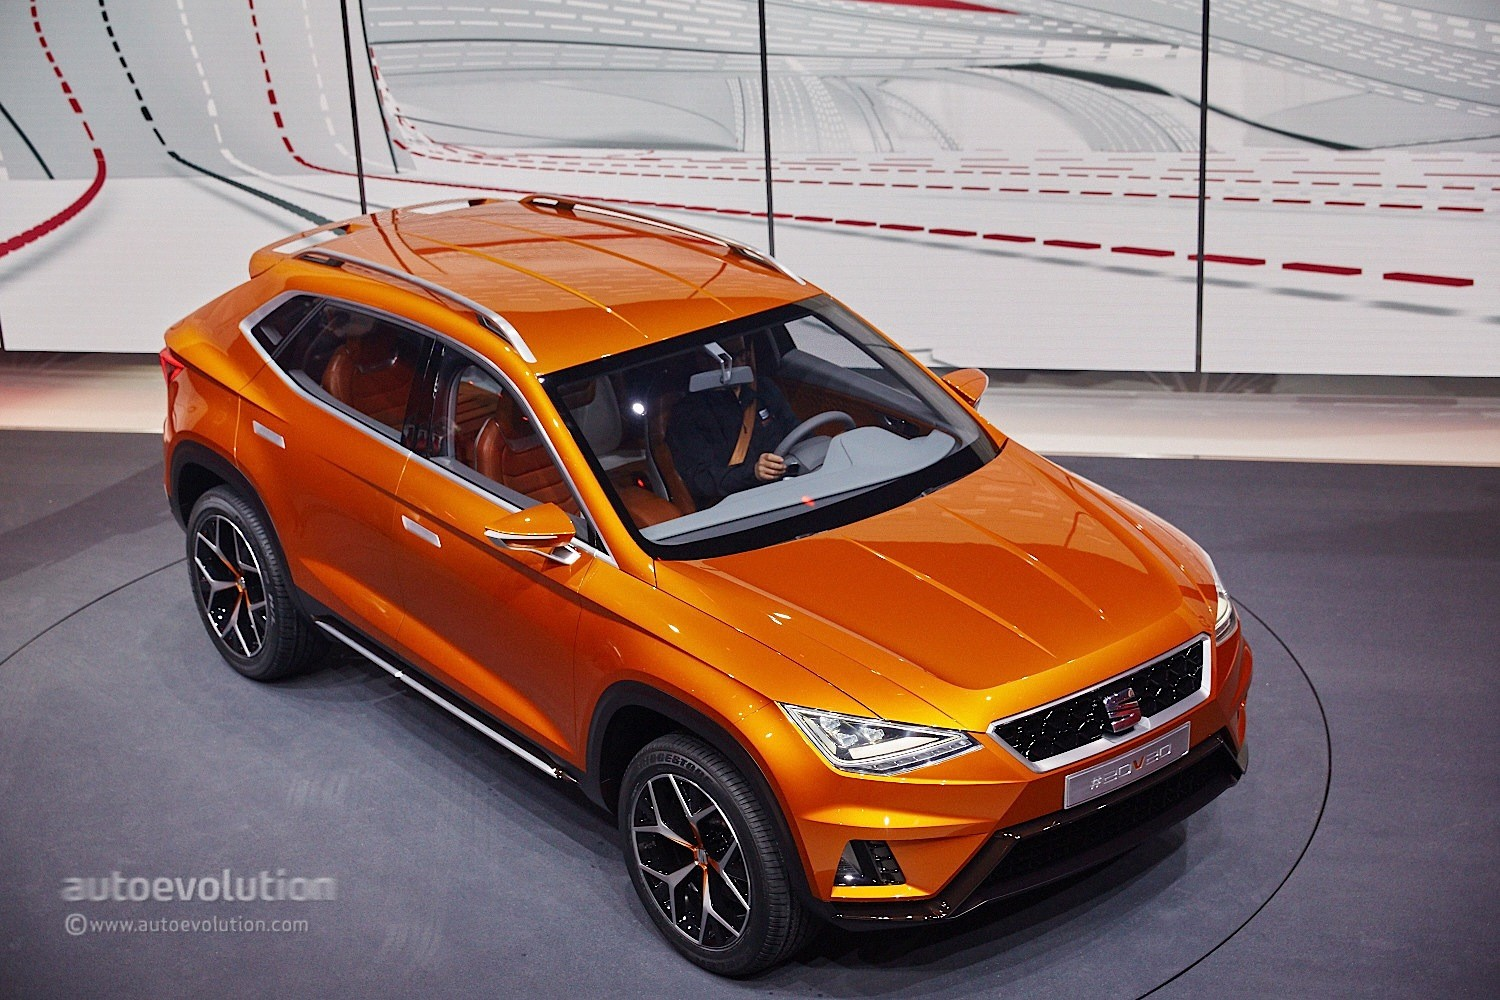 SEAT Prostyle SUV Will Be the First of 4 New Models Coming Until 2017 ...